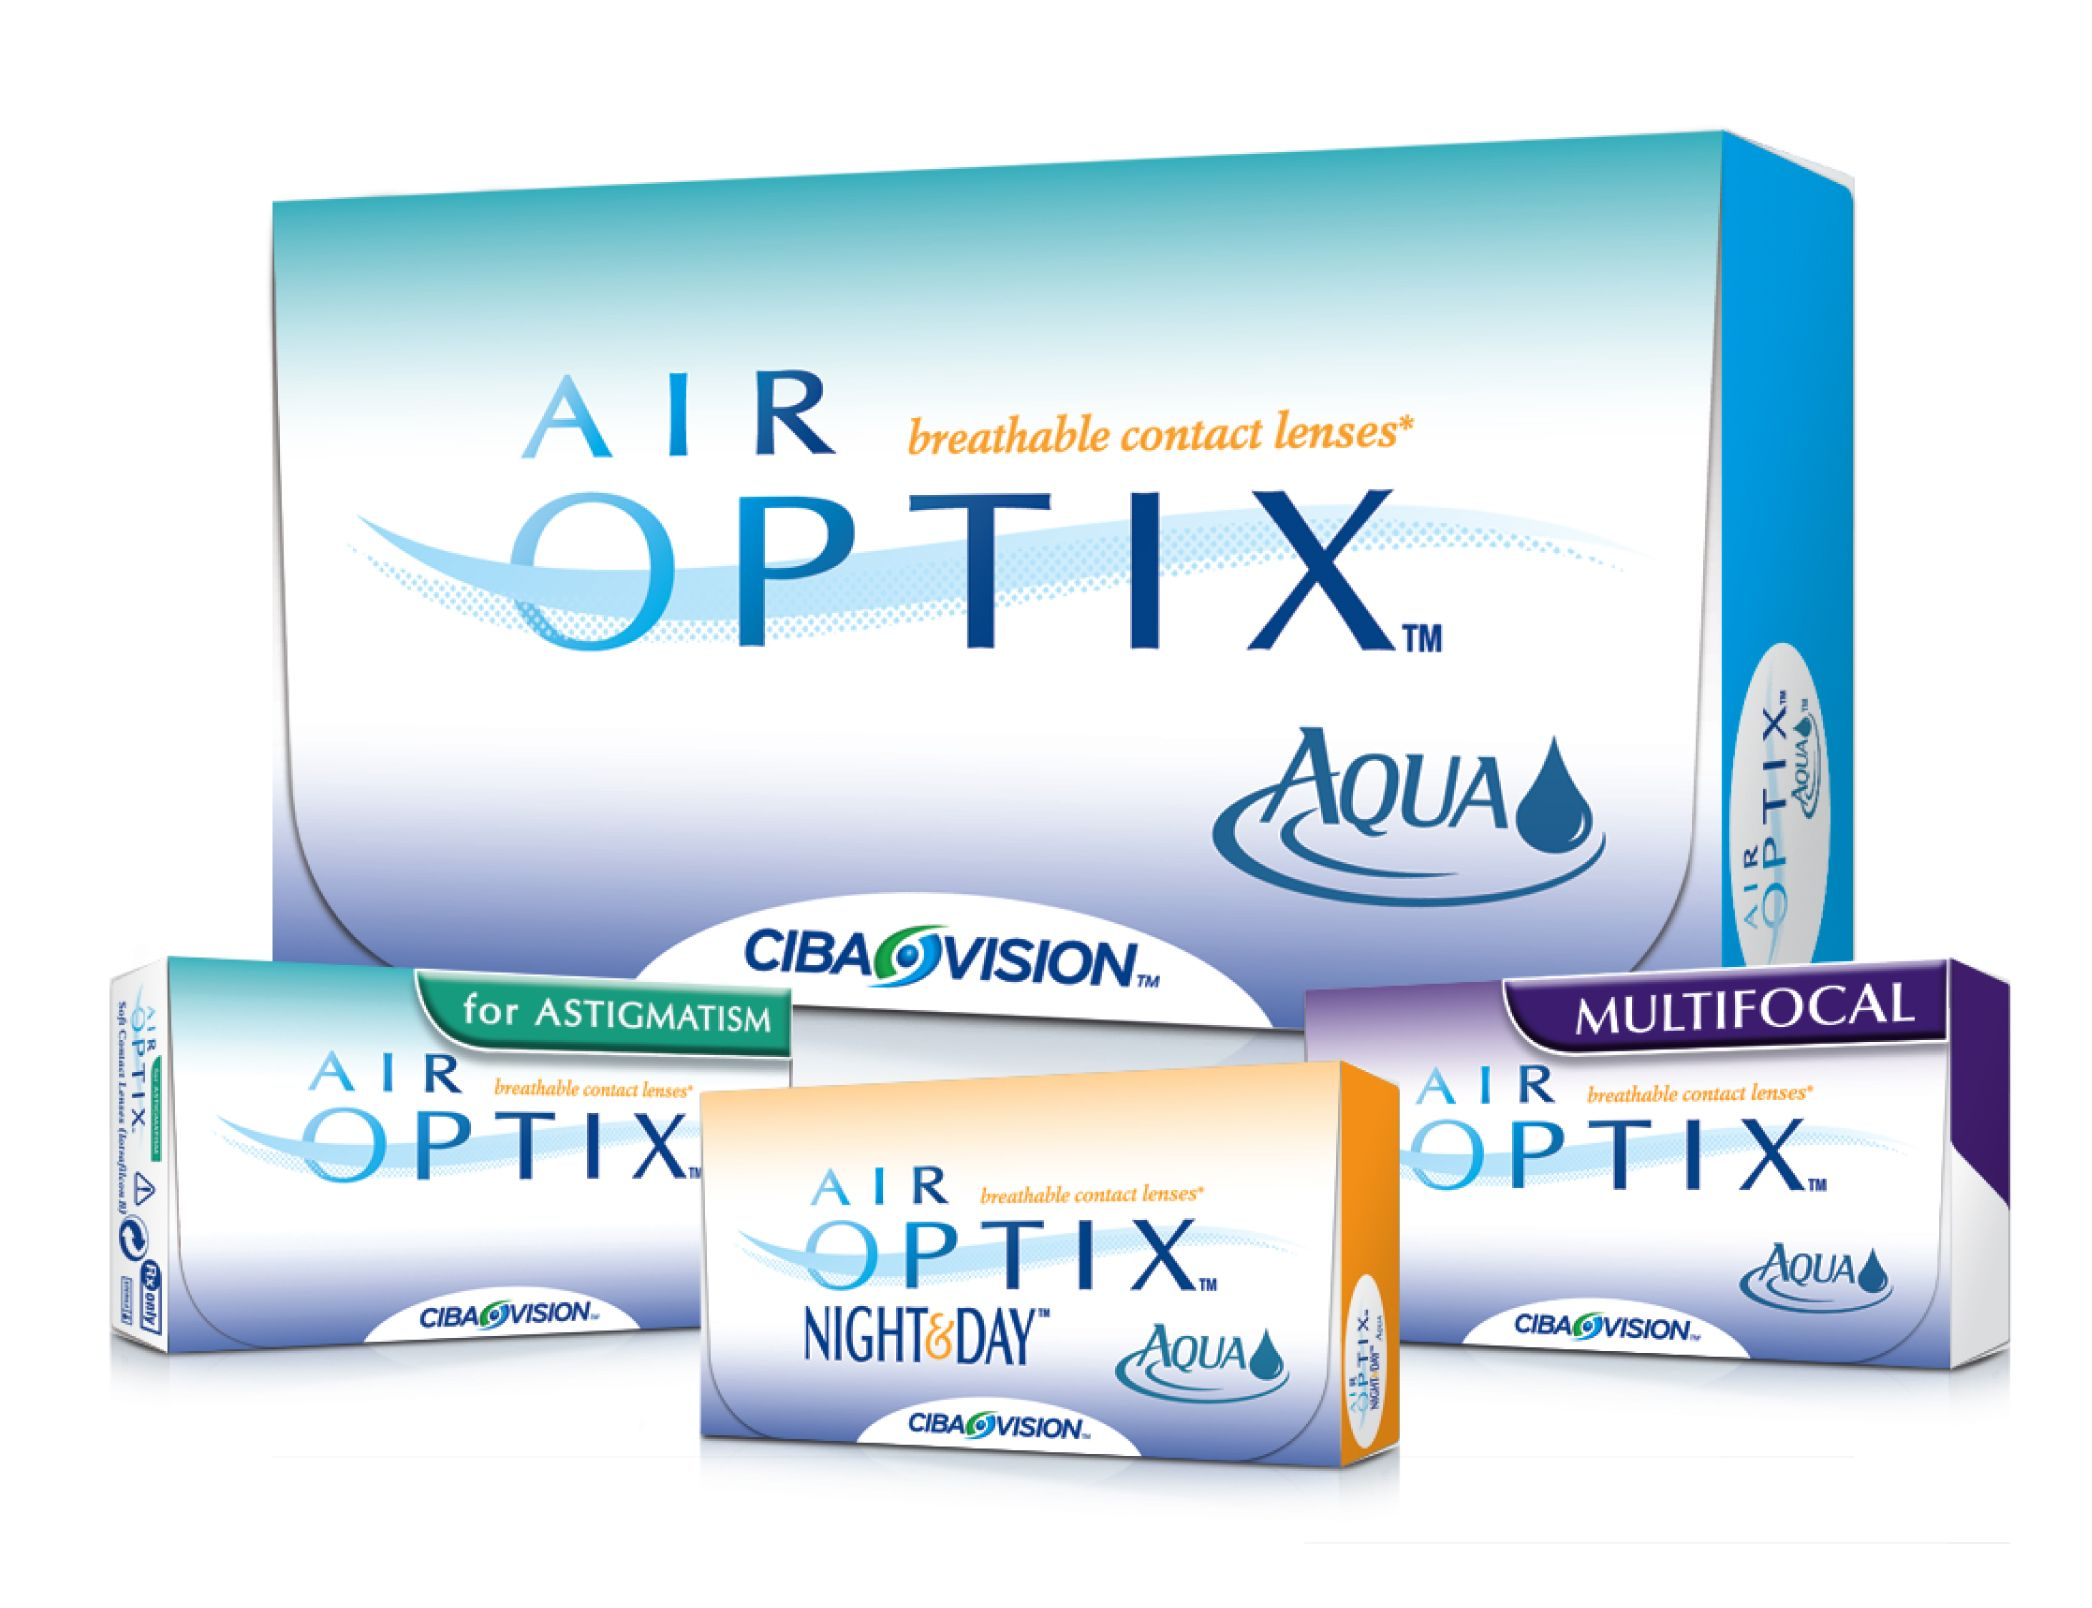 Get a free one month trial pair of Air Optix contact